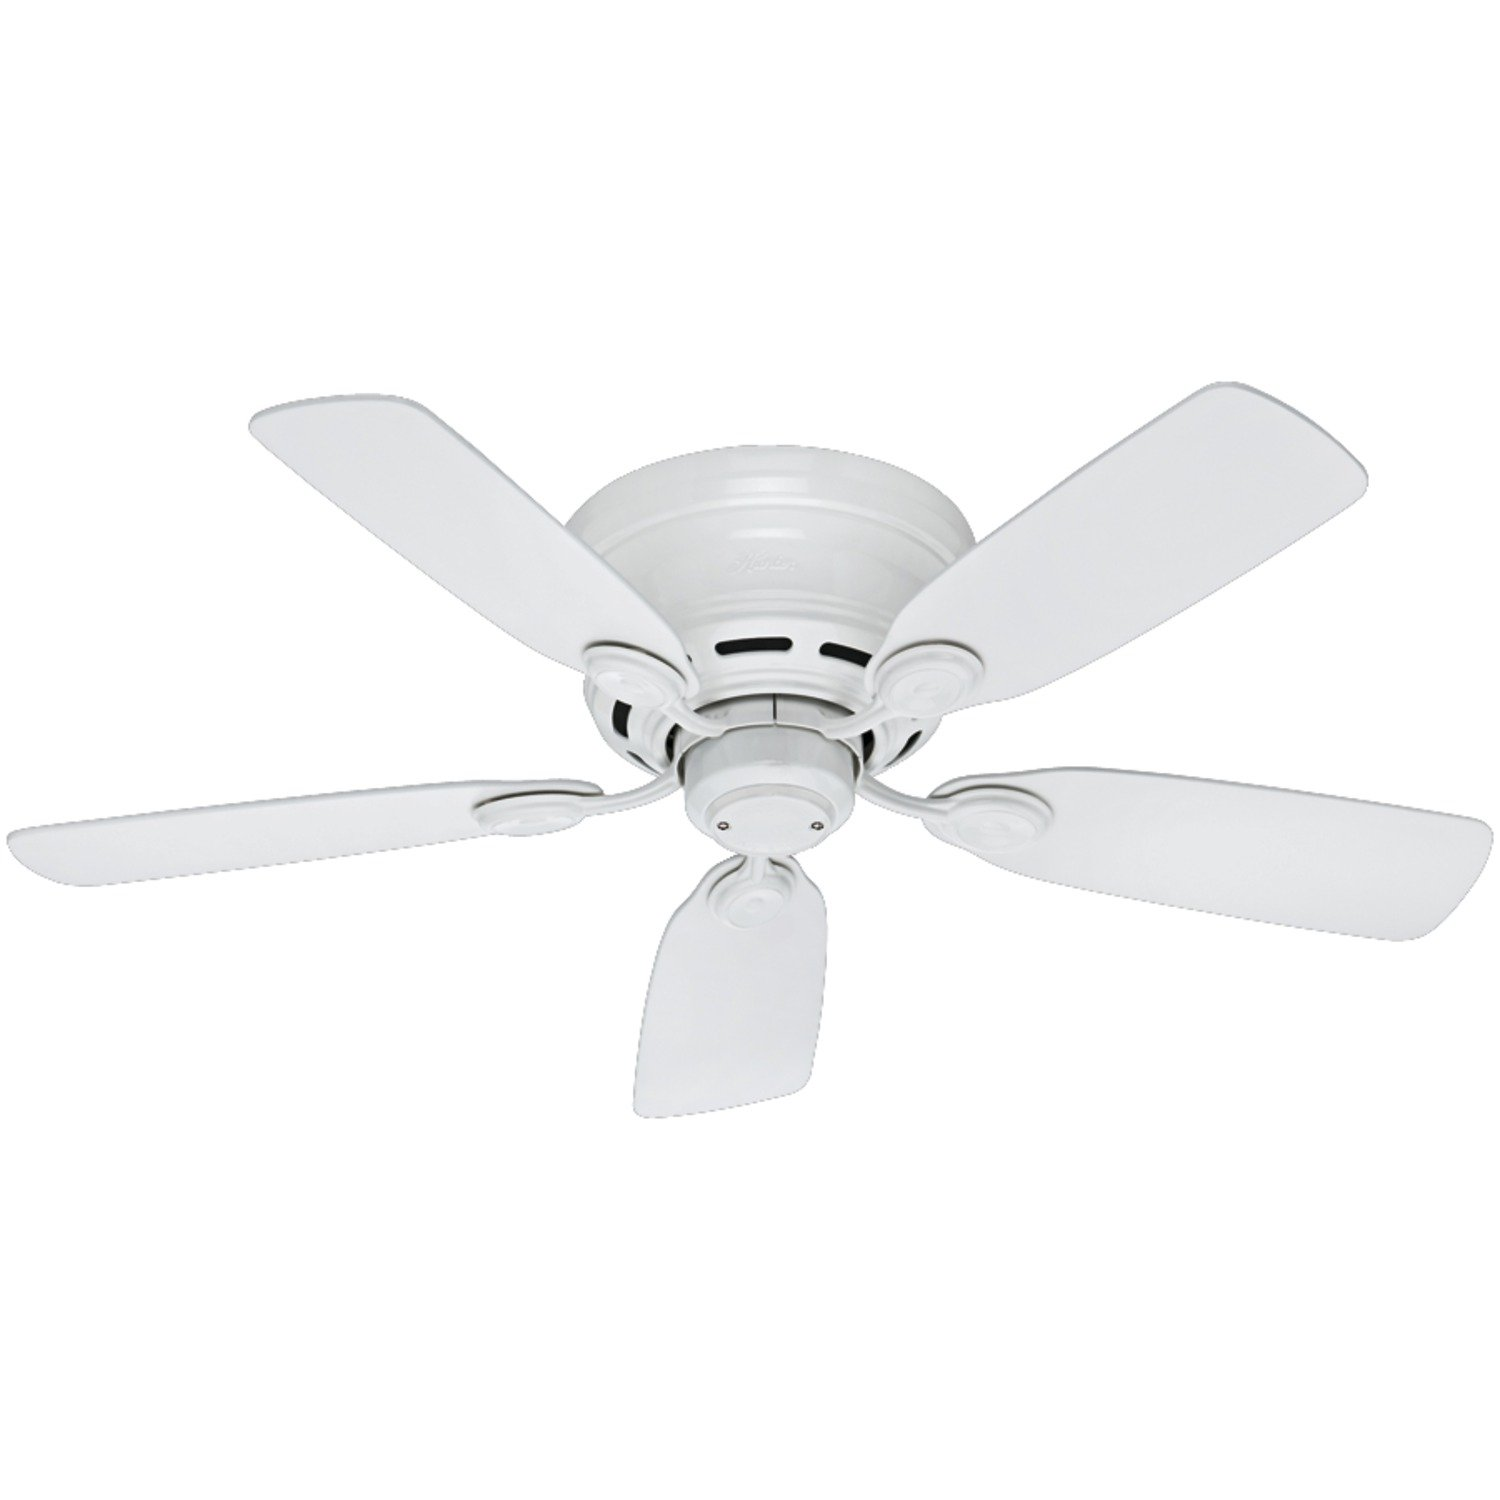 Hunter 51059 low profile iv 5 blade ceiling fan 42 inch white hunter 51059 low profile iv 5 blade ceiling fan 42 inch white amazon mozeypictures